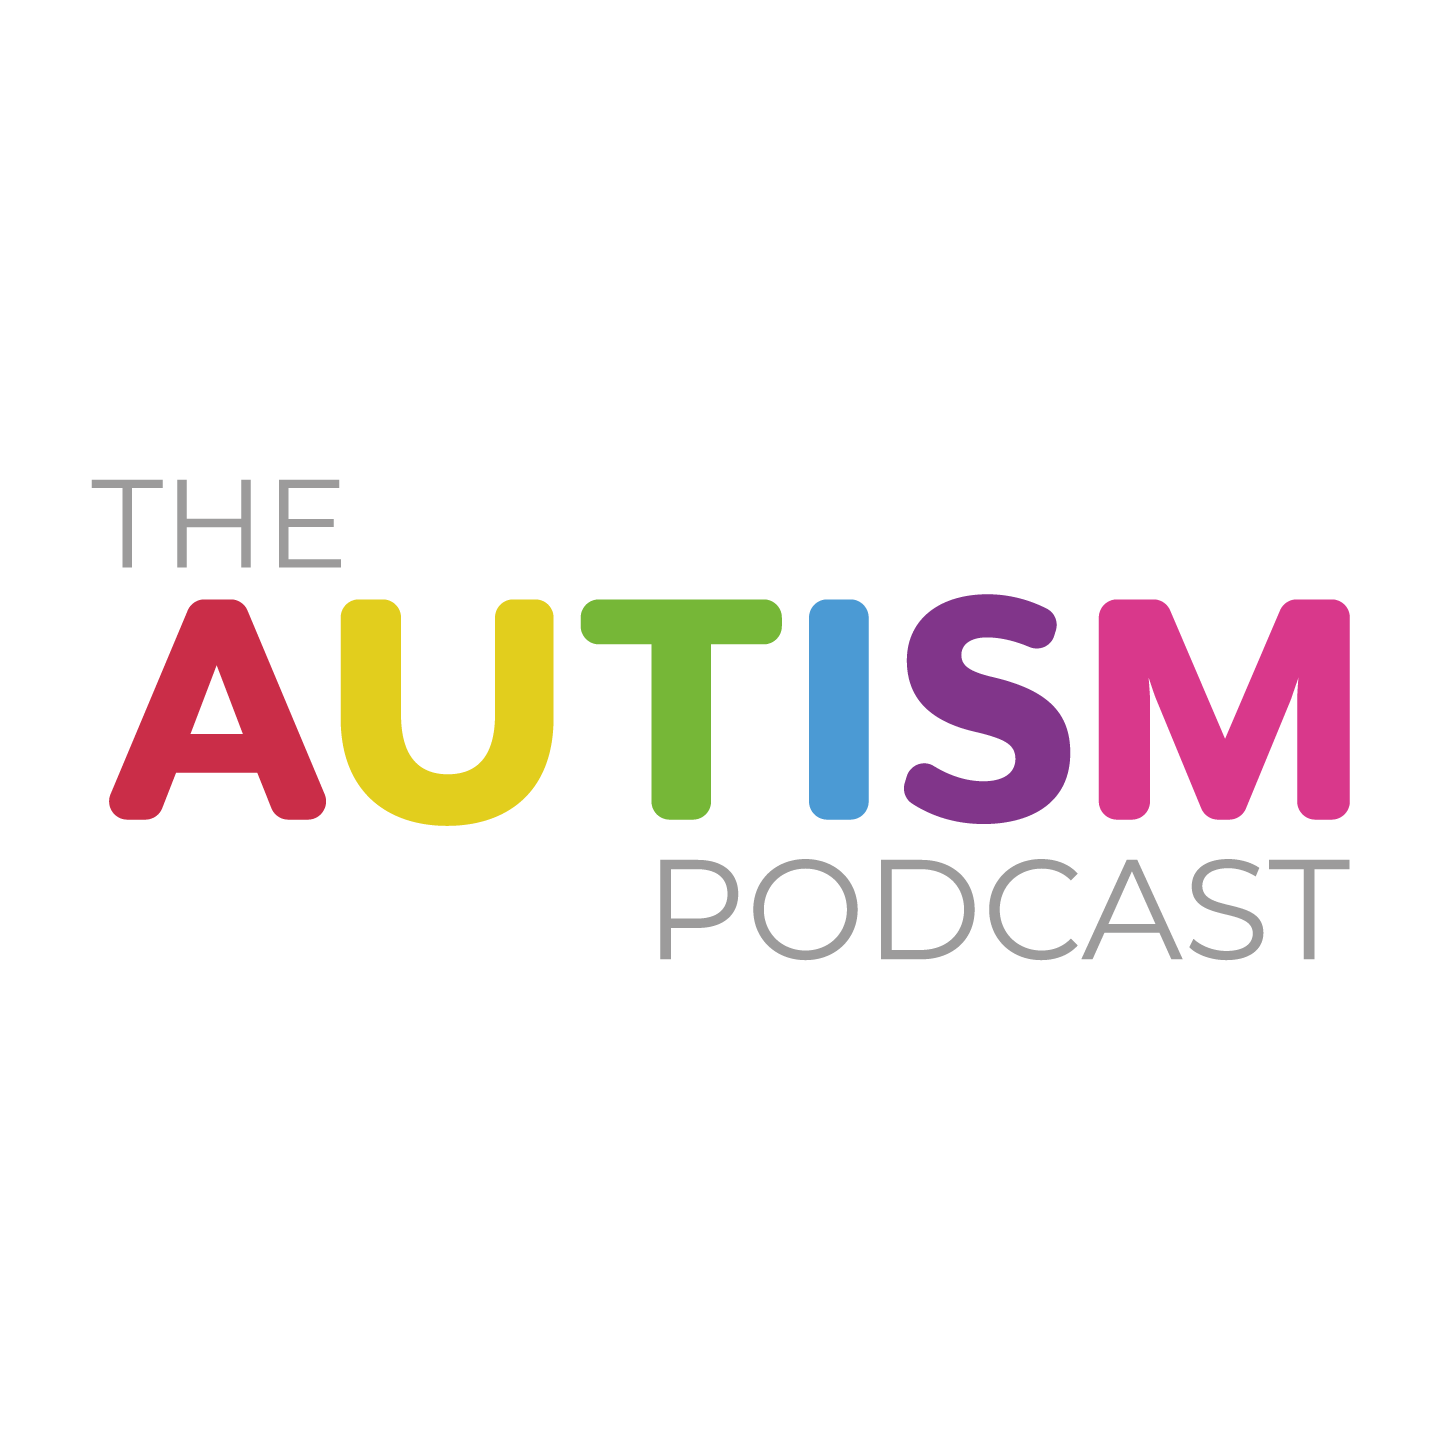 The Autism Podcast